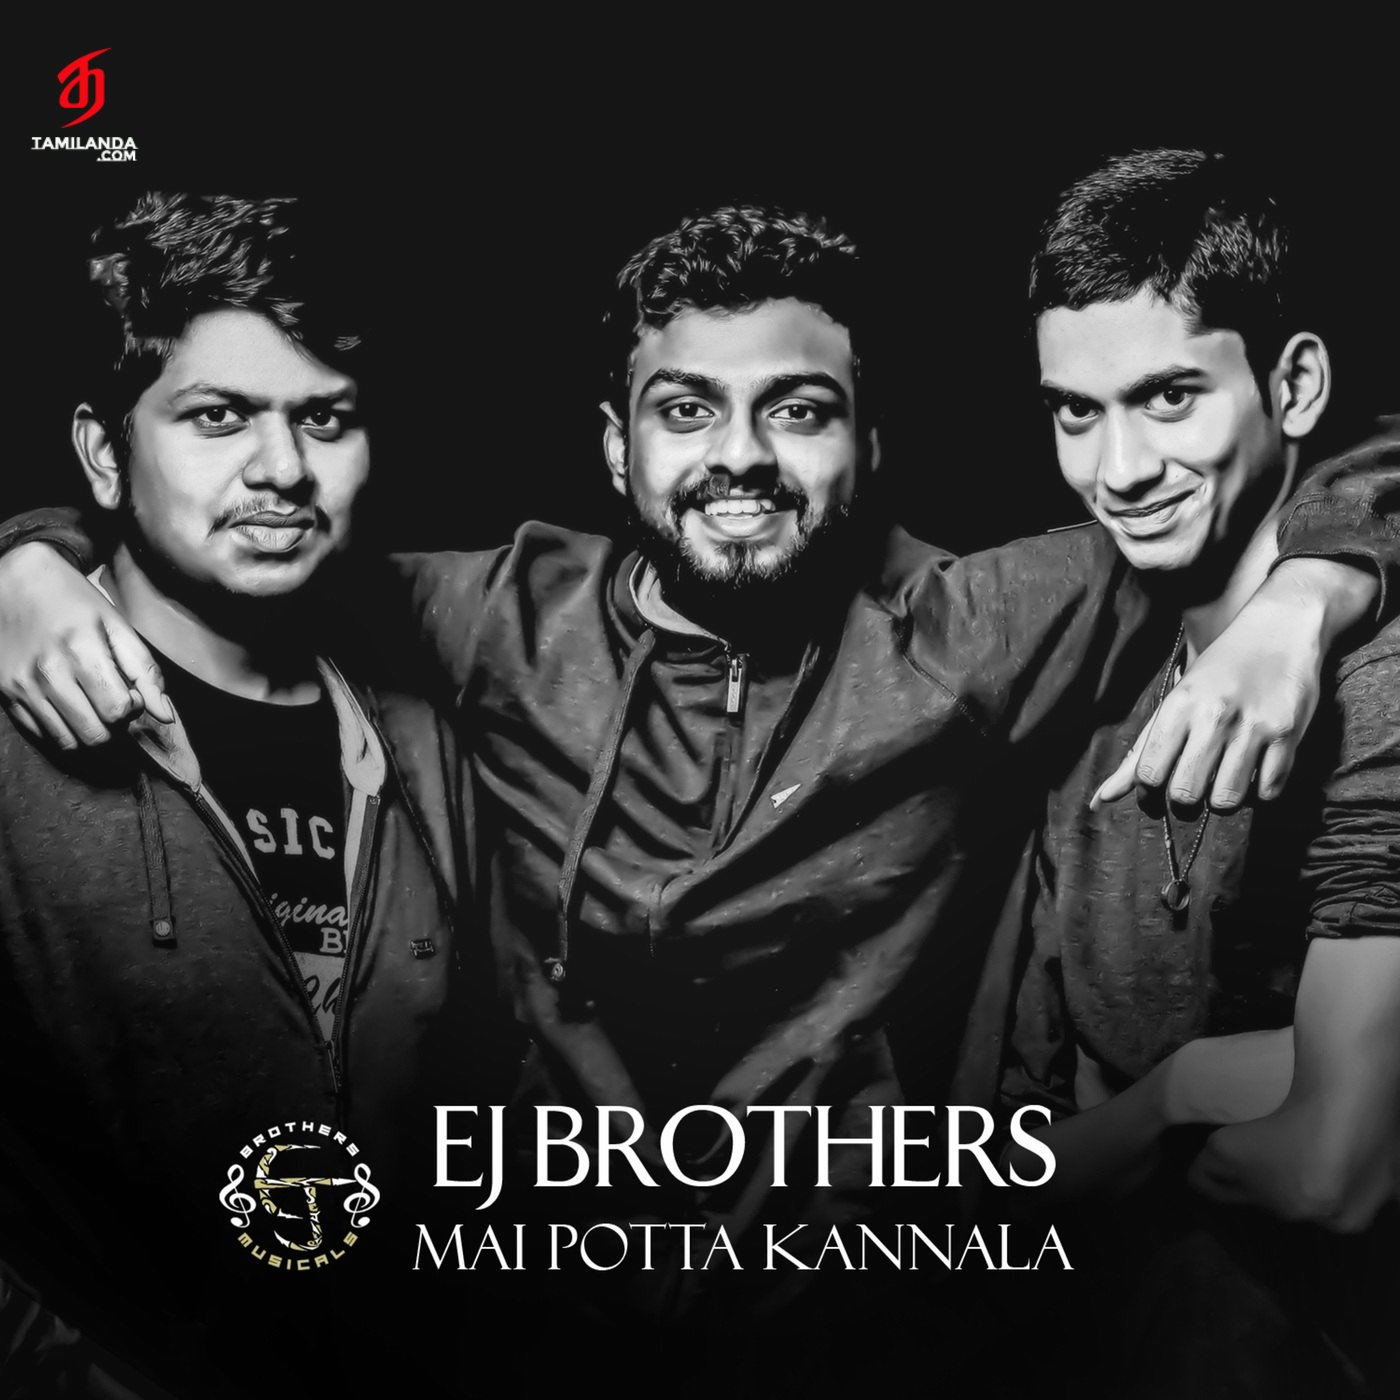 Mai Potta Kannala (Single) 16 BIT FLAC Songs